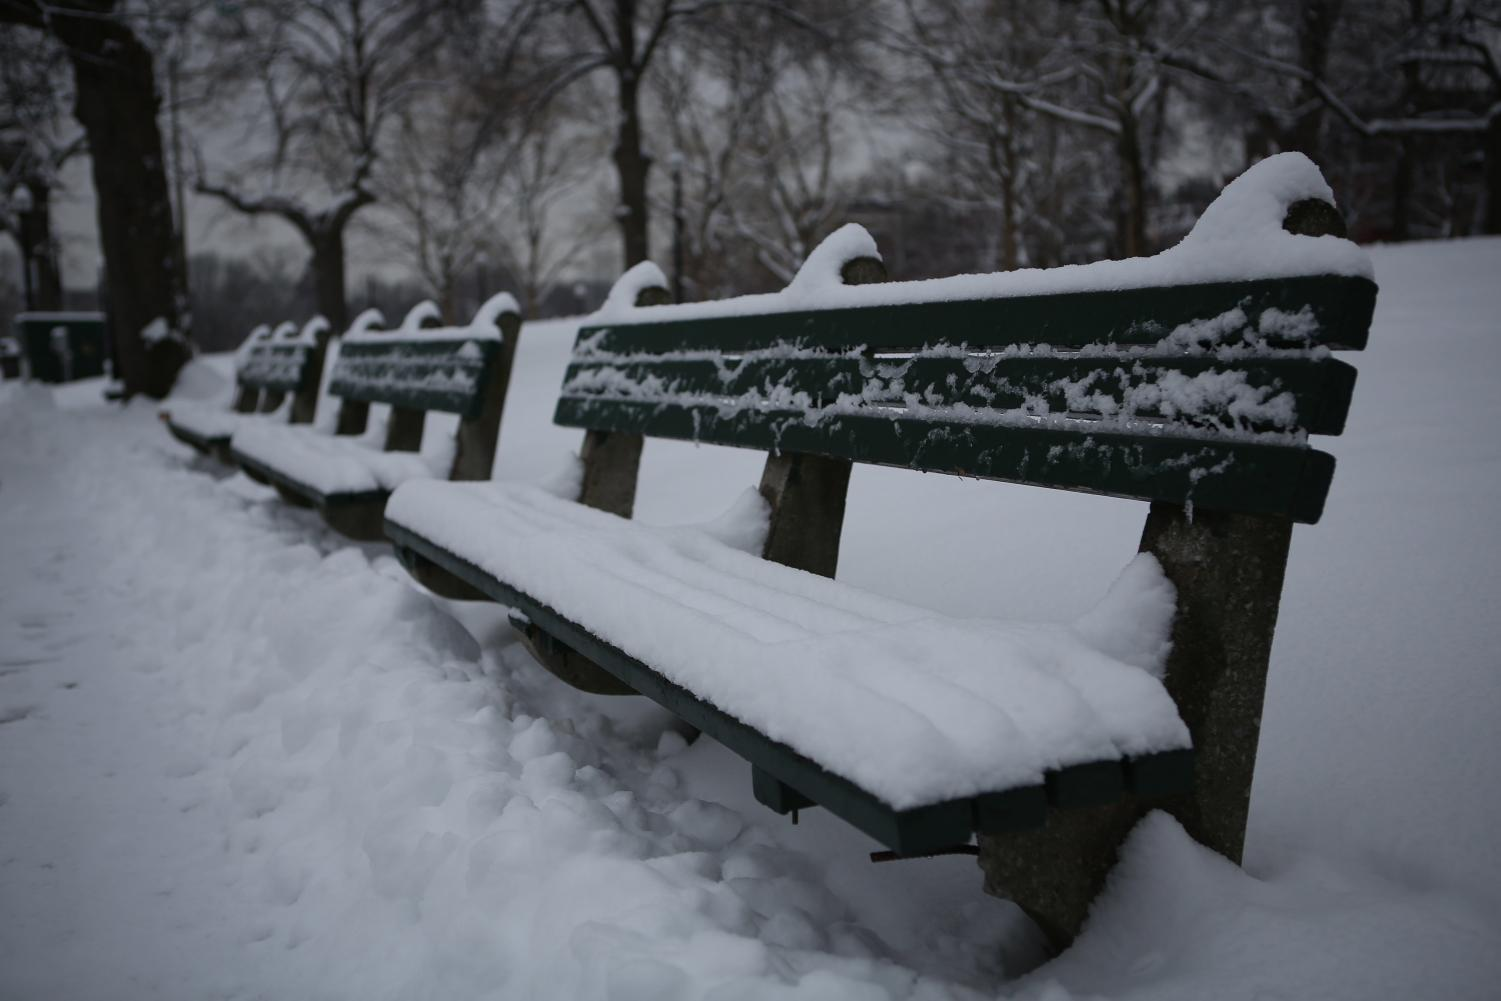 No one deserves to sleep outside in the snow, especially those experiencing homelessness.